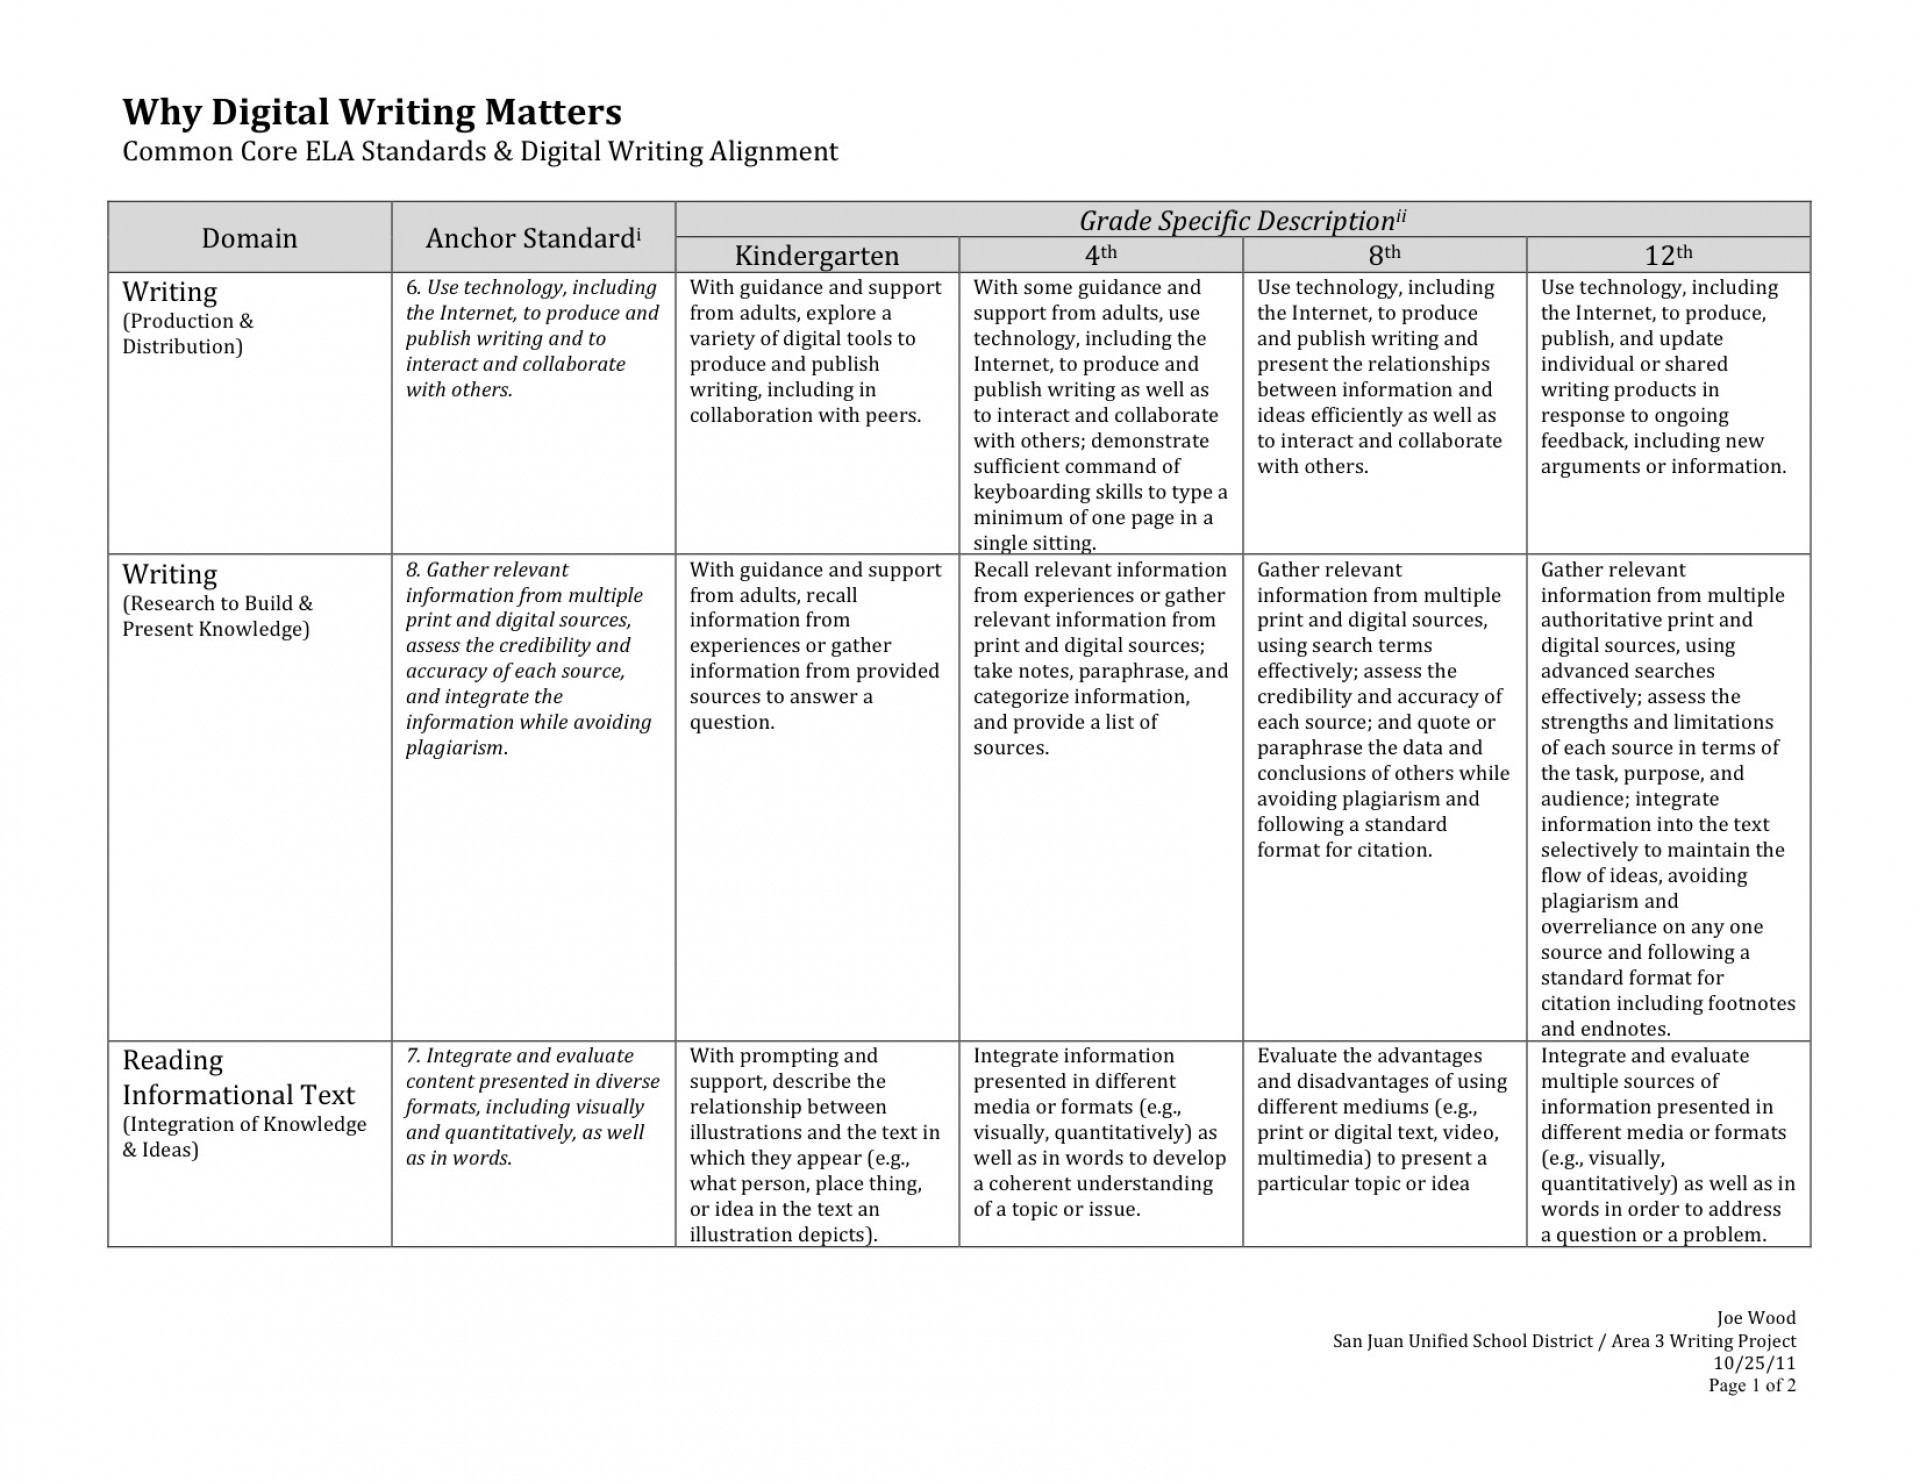 001 High School Research Paper Rubric Common Core Why Digital Writing Matters According To The Ela Unique 1920